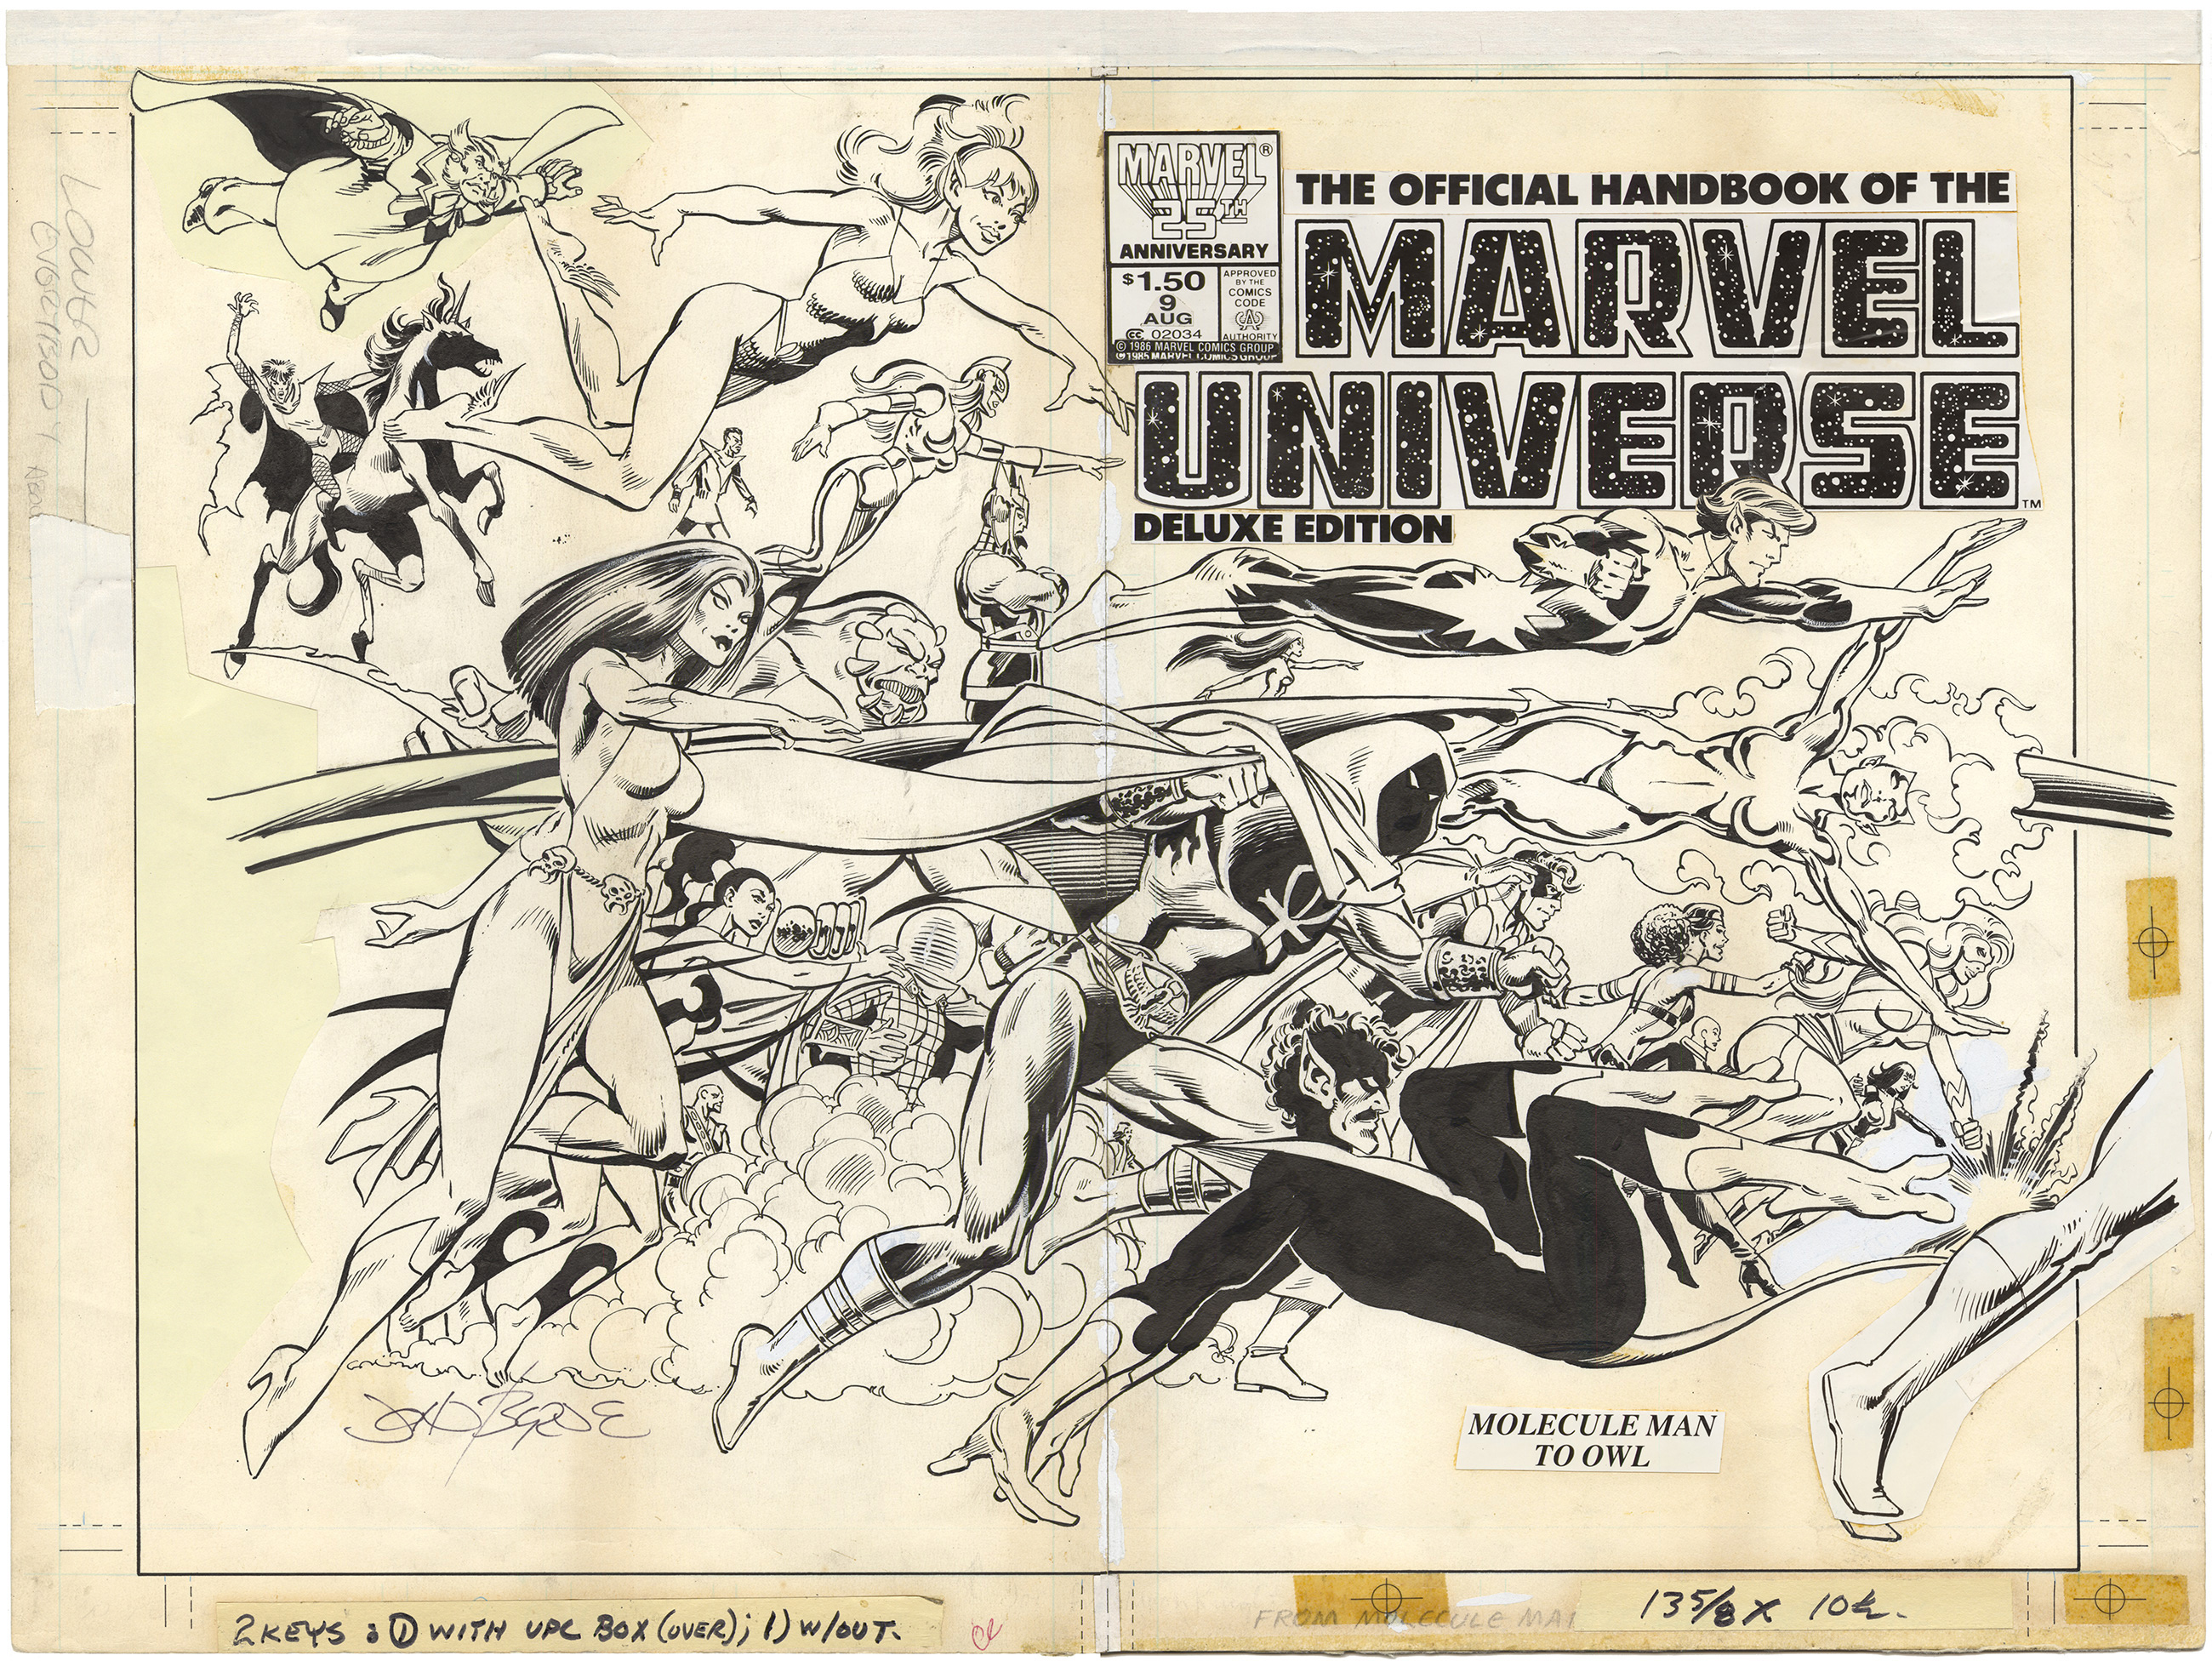 Official Handbook of the Marvel Universe #9 Cover